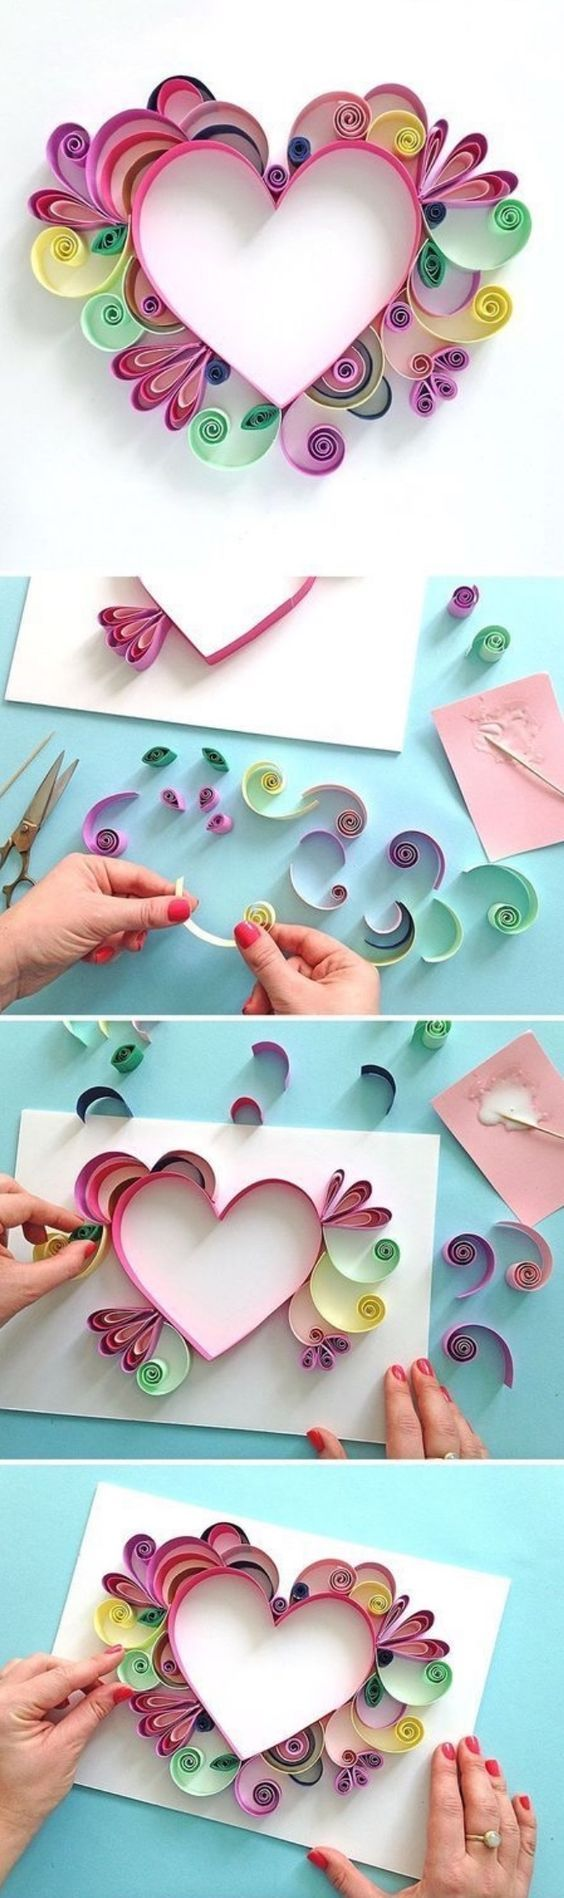 25 Best Ideas About Activit Manuelle Facile On Pinterest Activit Centre De Loisir Activit